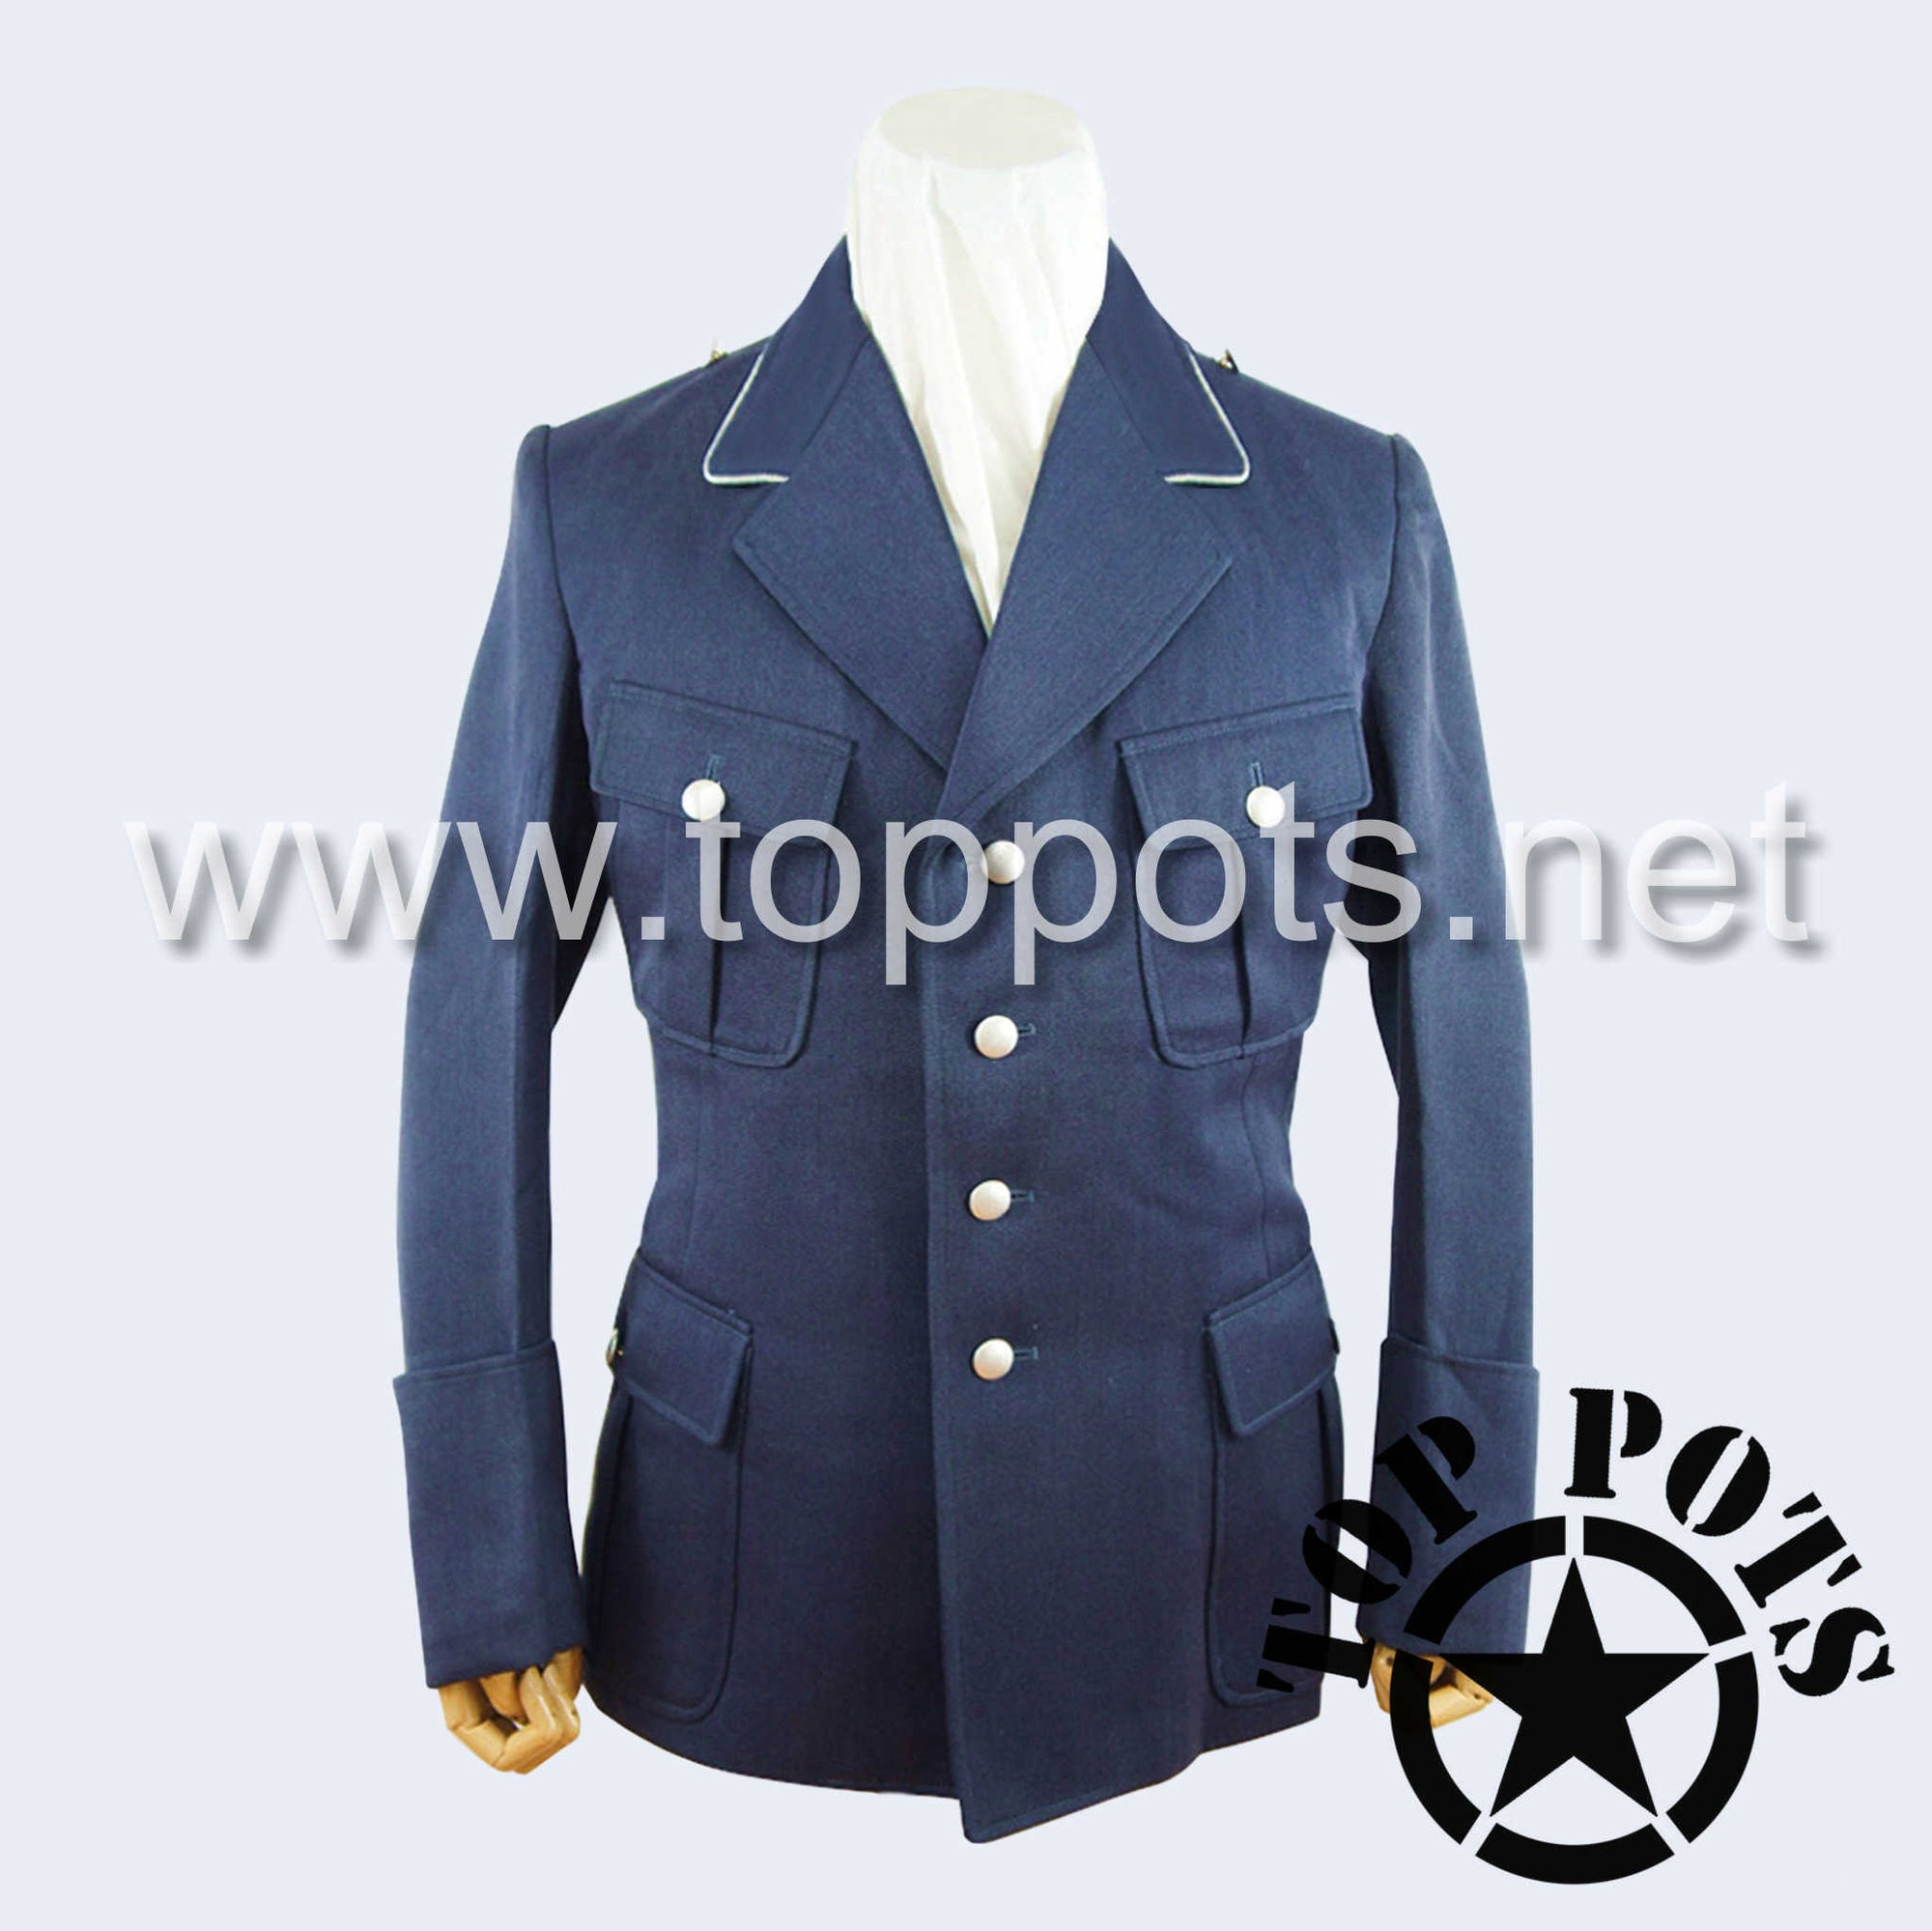 WWII German Luftwaffe M1935 Officer Uniform Jacket Blue Grey Gabardine Tunic (Flat Pocket Flaps)